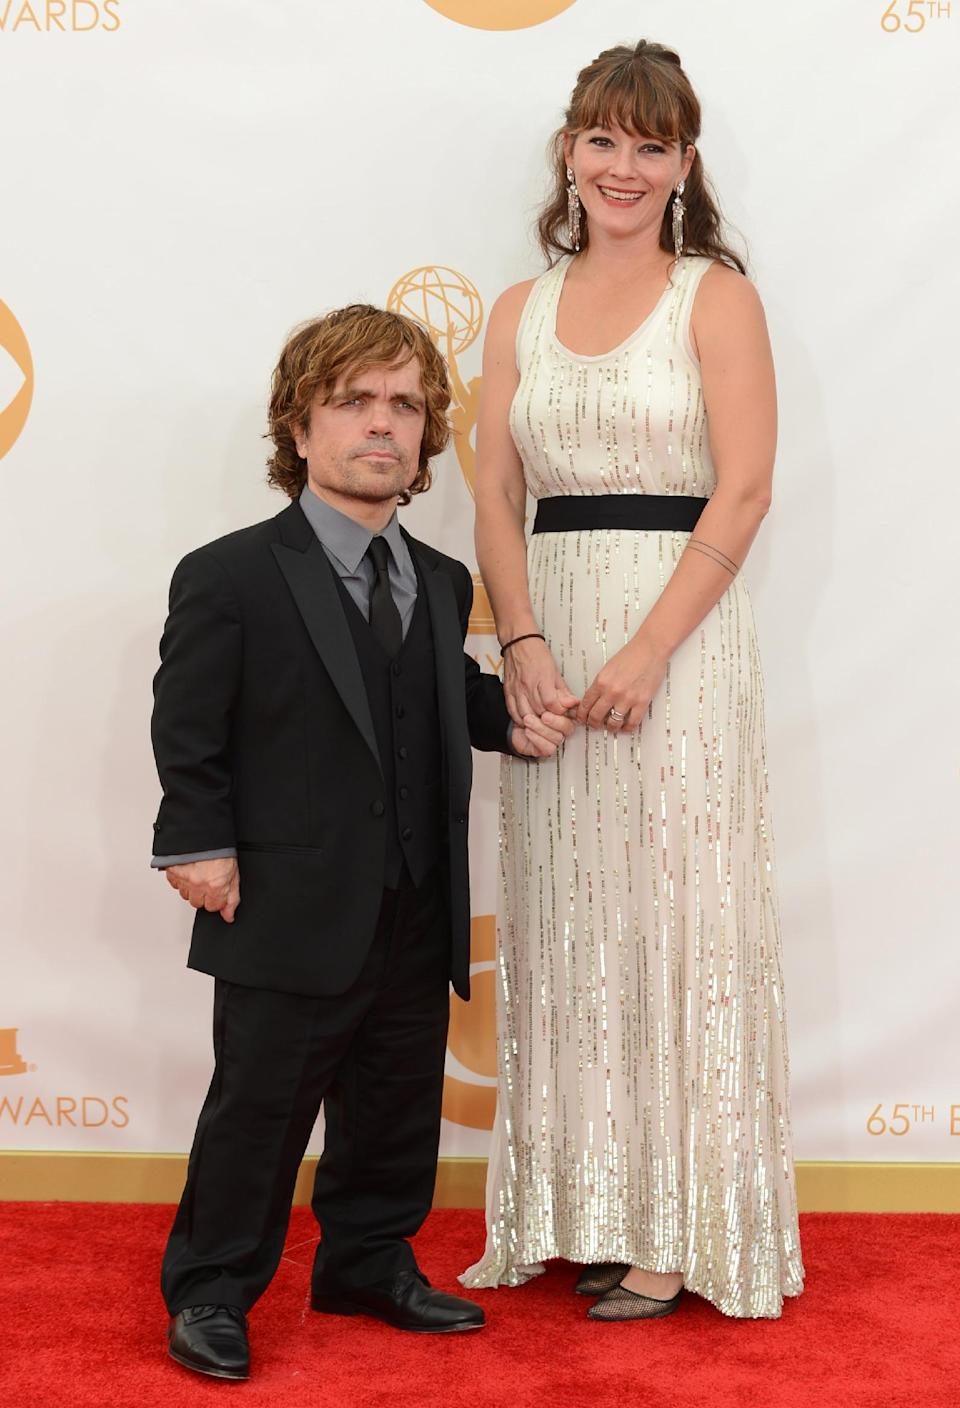 Peter Dinklage, left, and his wife Erica Schmidt arrive at the 65th Primetime Emmy Awards at Nokia Theatre on Sunday Sept. 22, 2013, in Los Angeles. (Photo by Jordan Strauss/Invision/AP)